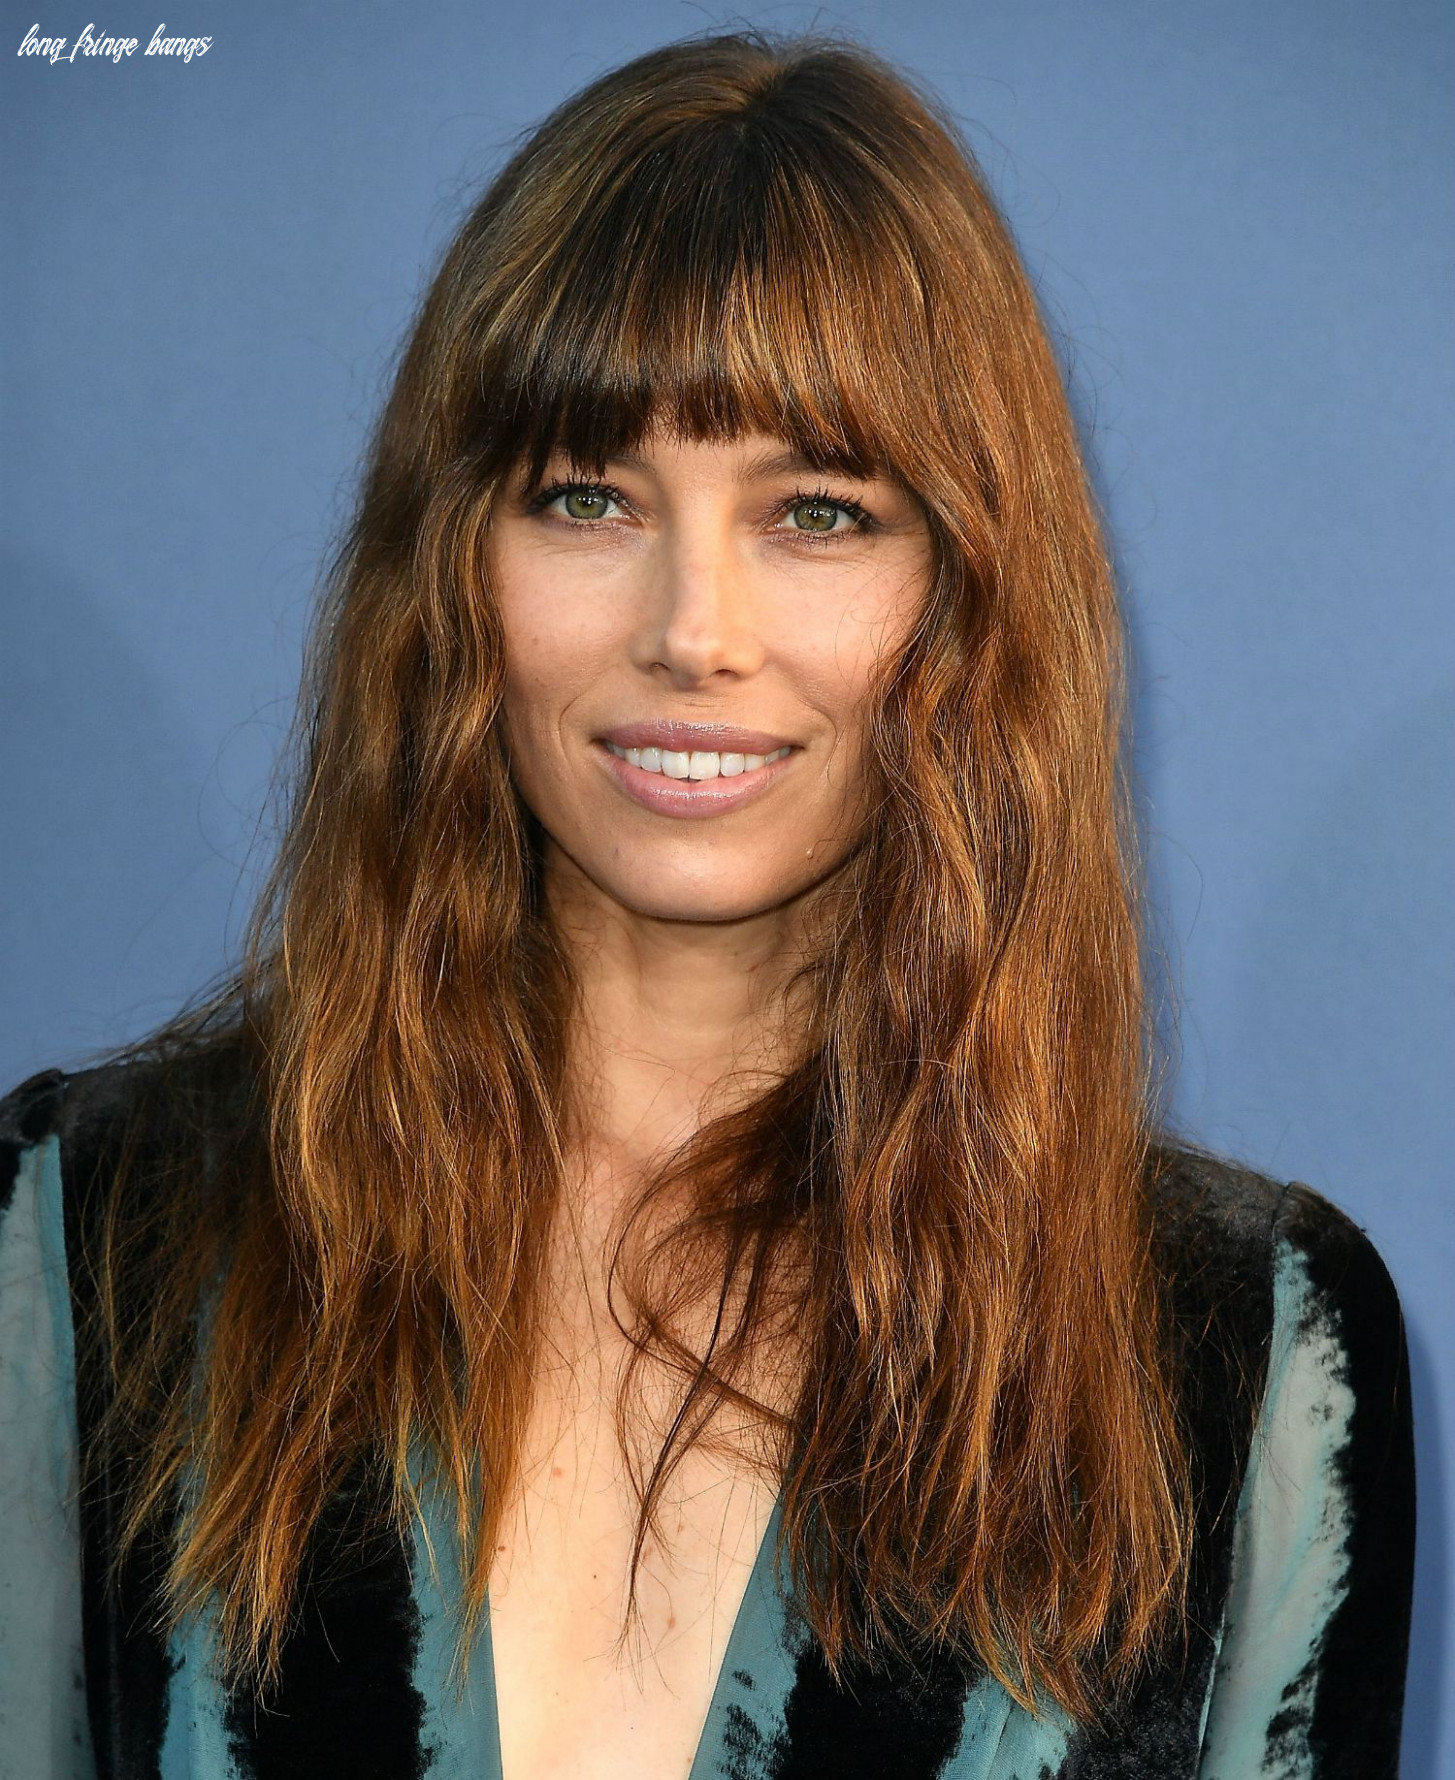 A gallery of hairstyles featuring fringe bangs long fringe bangs